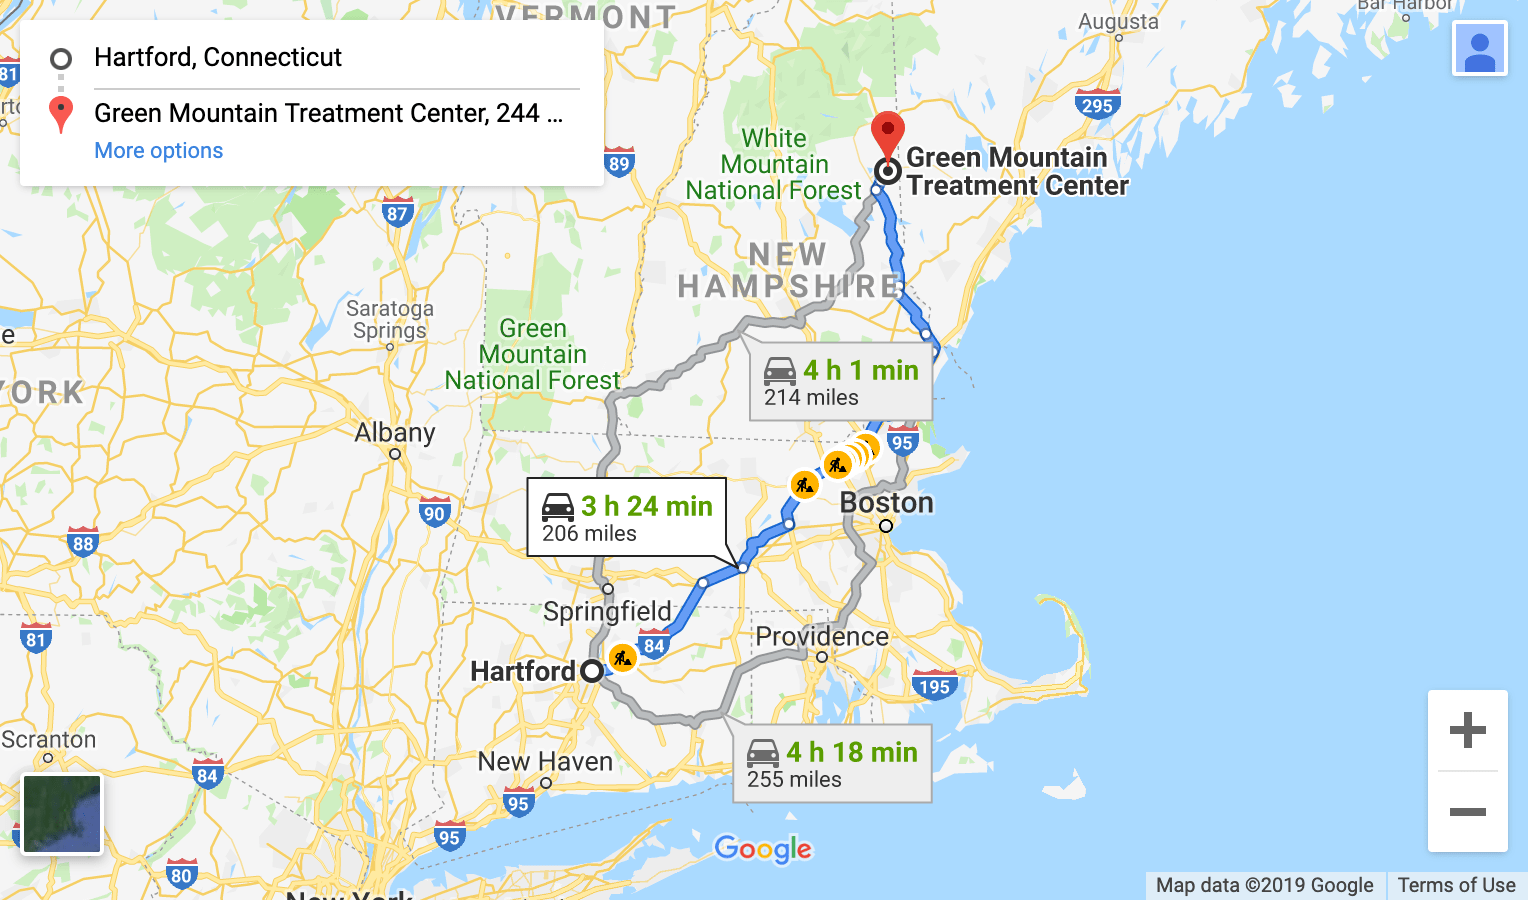 map of directions from hartford cn to green mountain treatment center drug rehab center